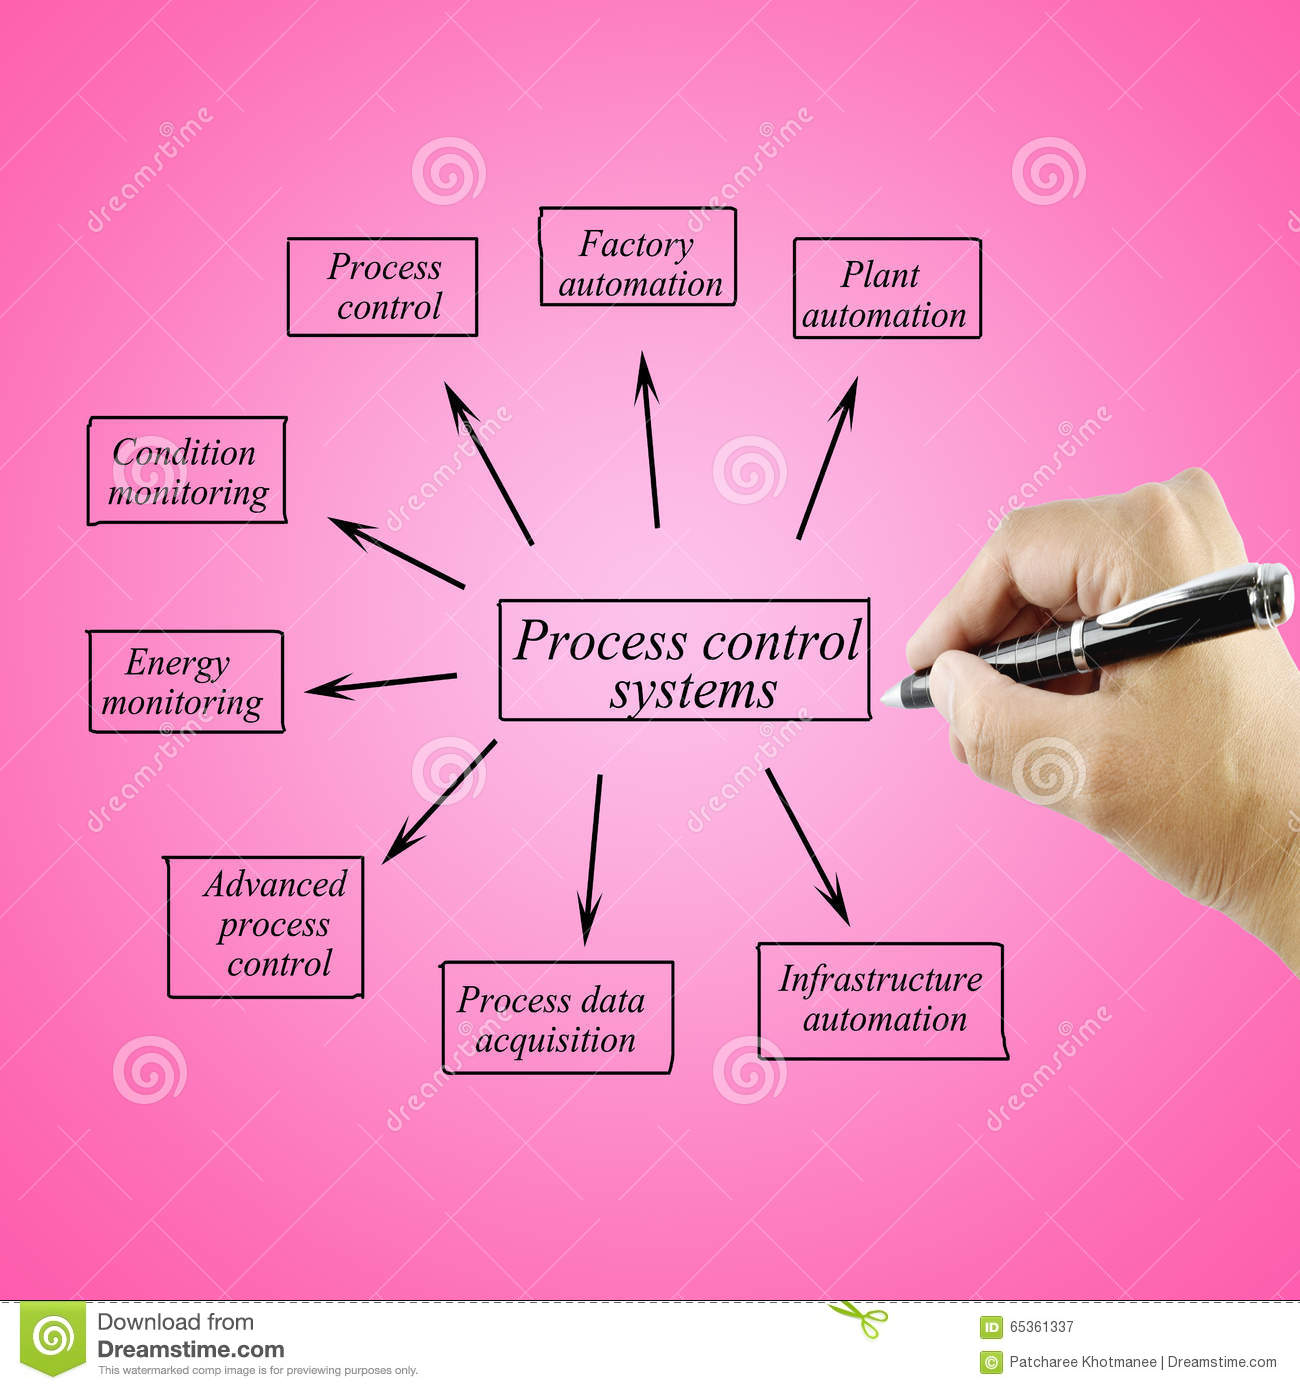 control processes essay Continue for 5 more pages » • join now to read essay the six sigma define, measure, analyze, improve, control (dmaic) process and other term papers or research documents read full document save download as (for upgraded members.